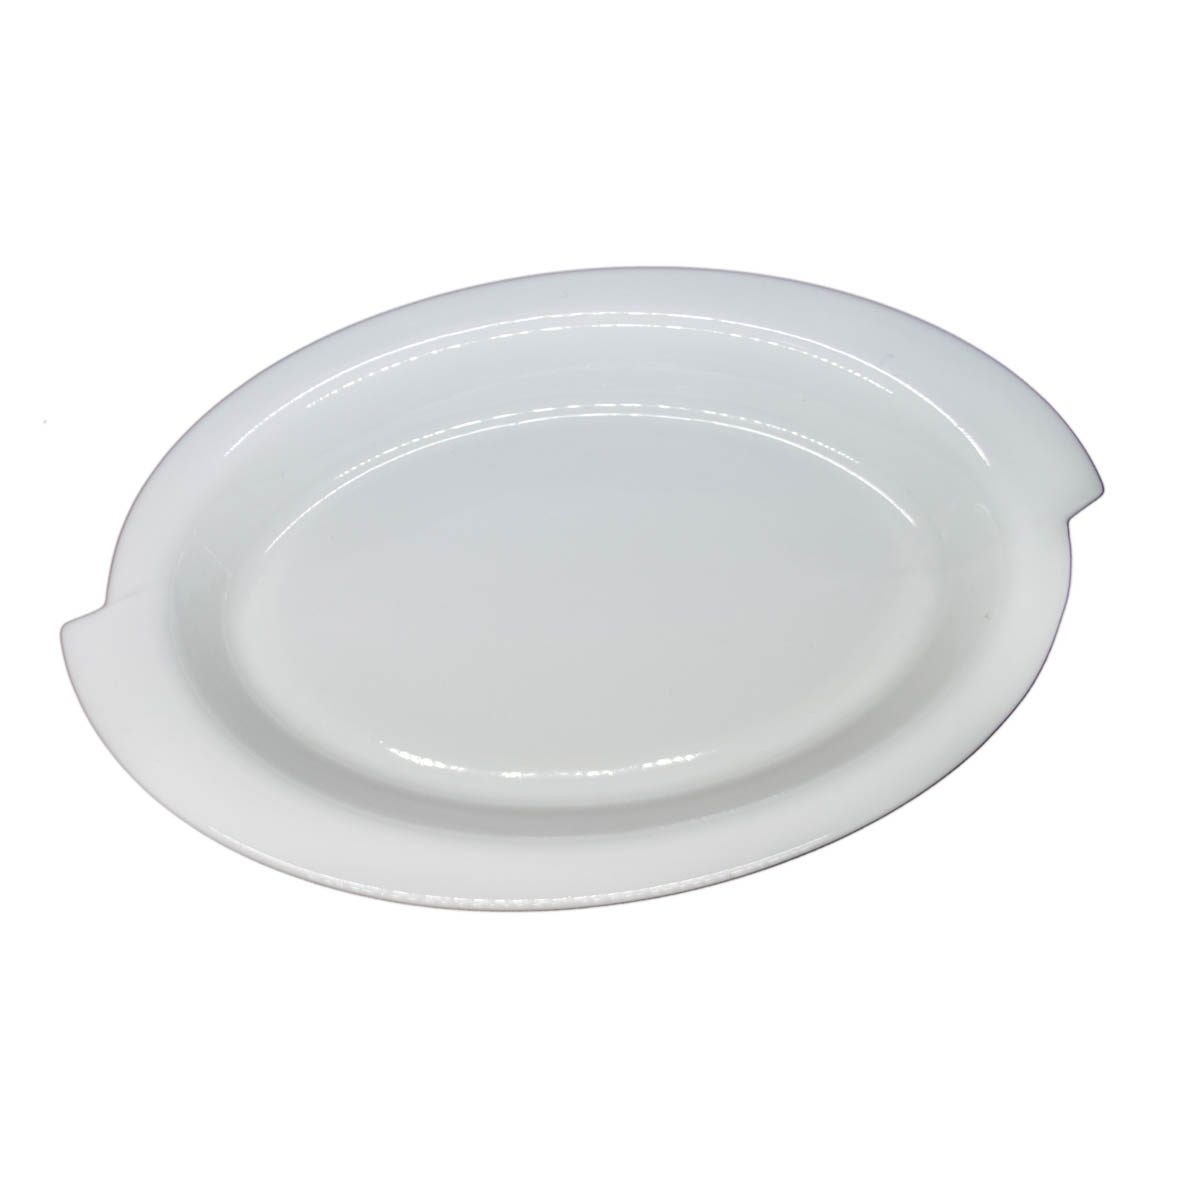 Travessa de Porcelana Oval Borda S 46x25,5x9